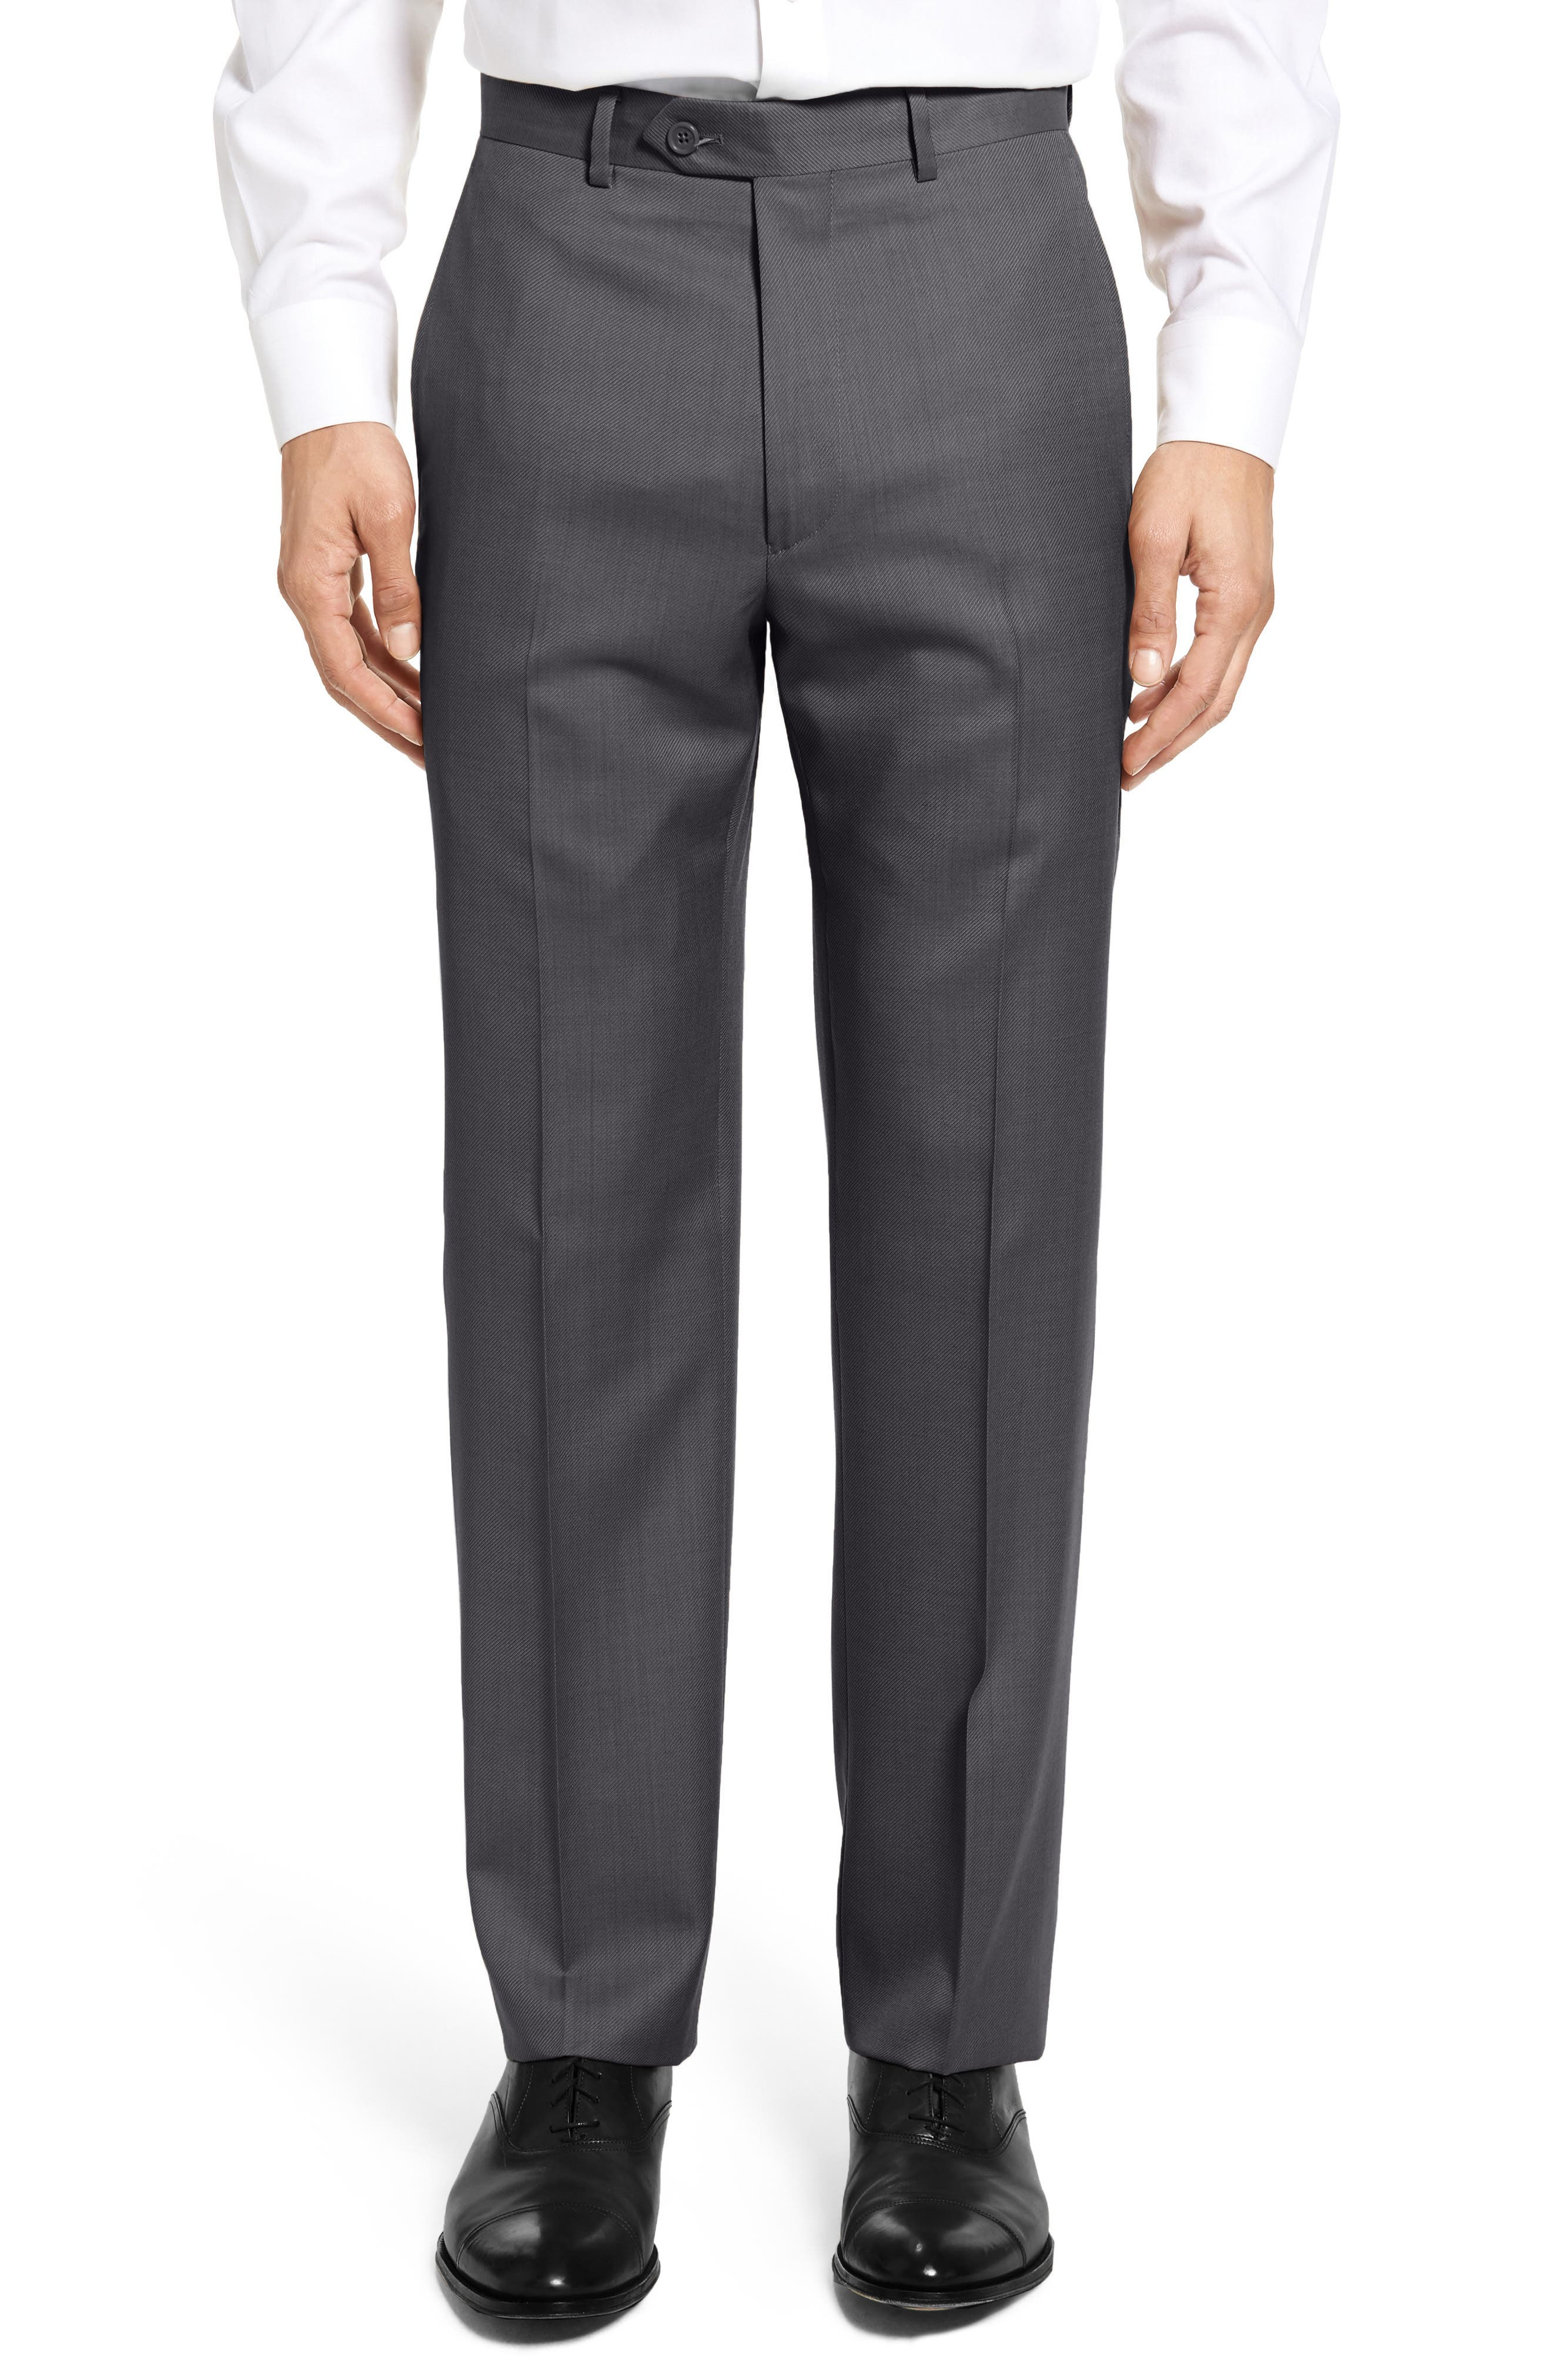 SANTORELLI Flat Front Twill Wool Trousers in Charcoal